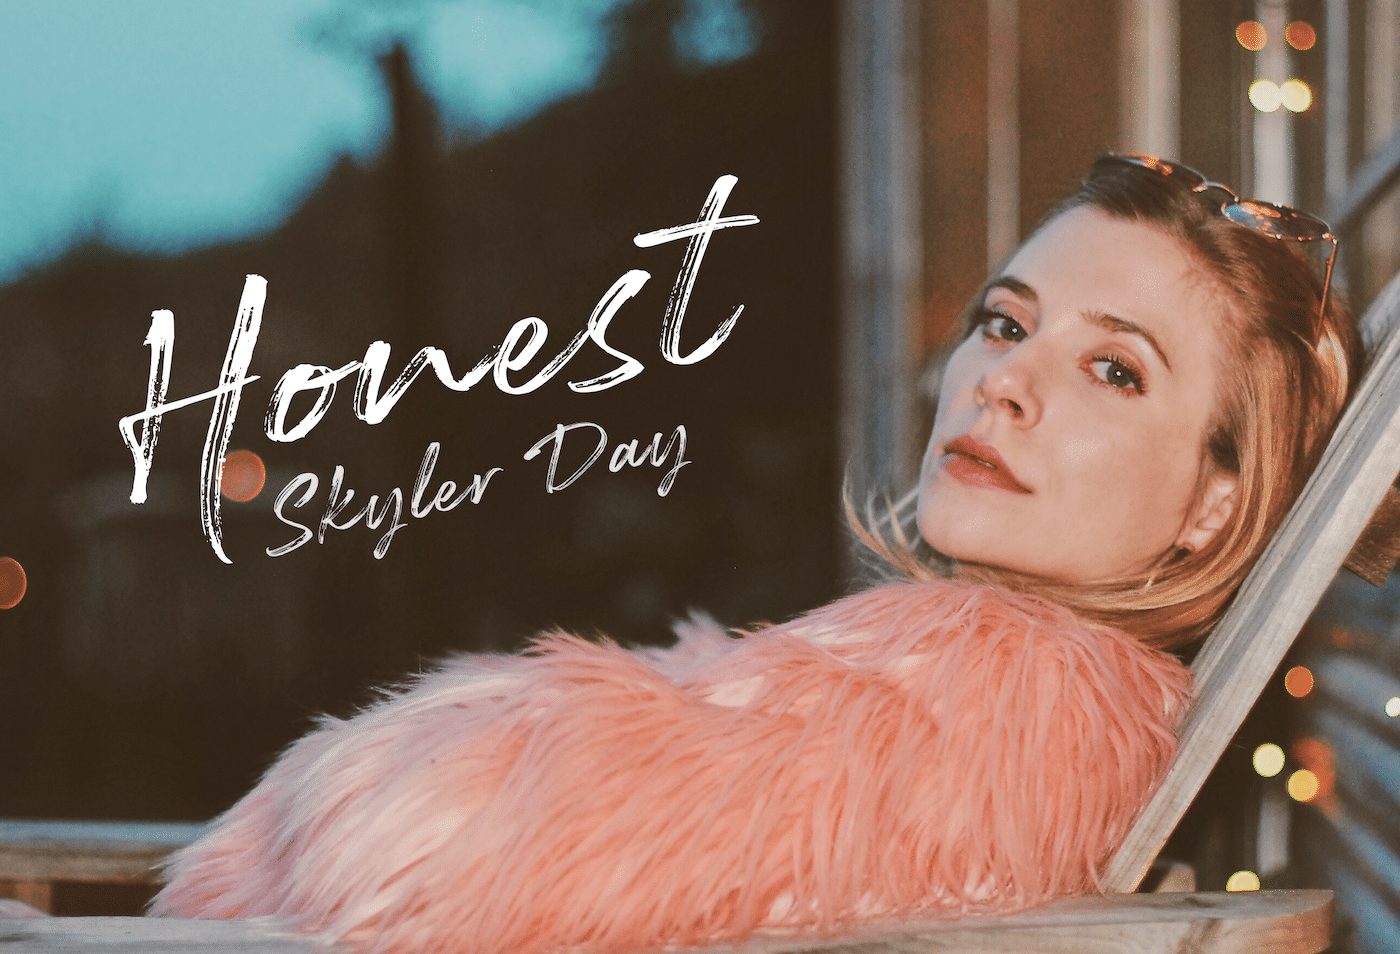 """Read more about the article Skyler Day Is """"Honest"""" In Her New Song (Listen!)"""